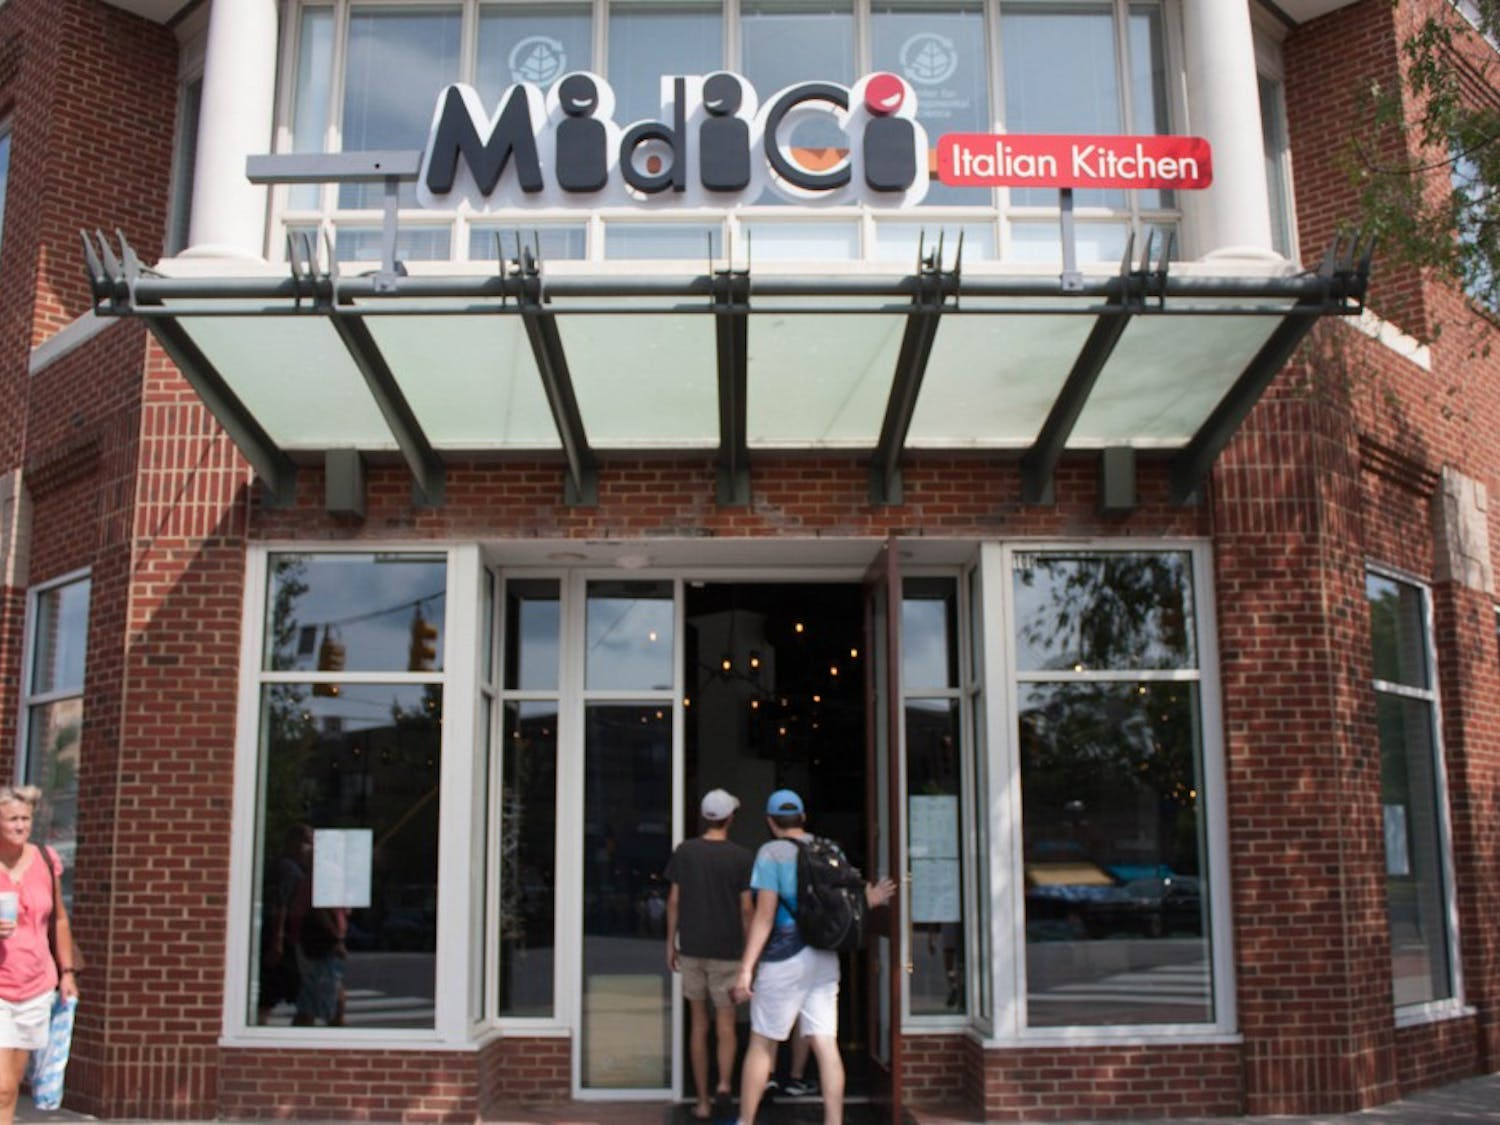 MidiCi Italian Kitchen at 100 E. Franklin St. specializes in Neapolitan pizza baked in 90 seconds.